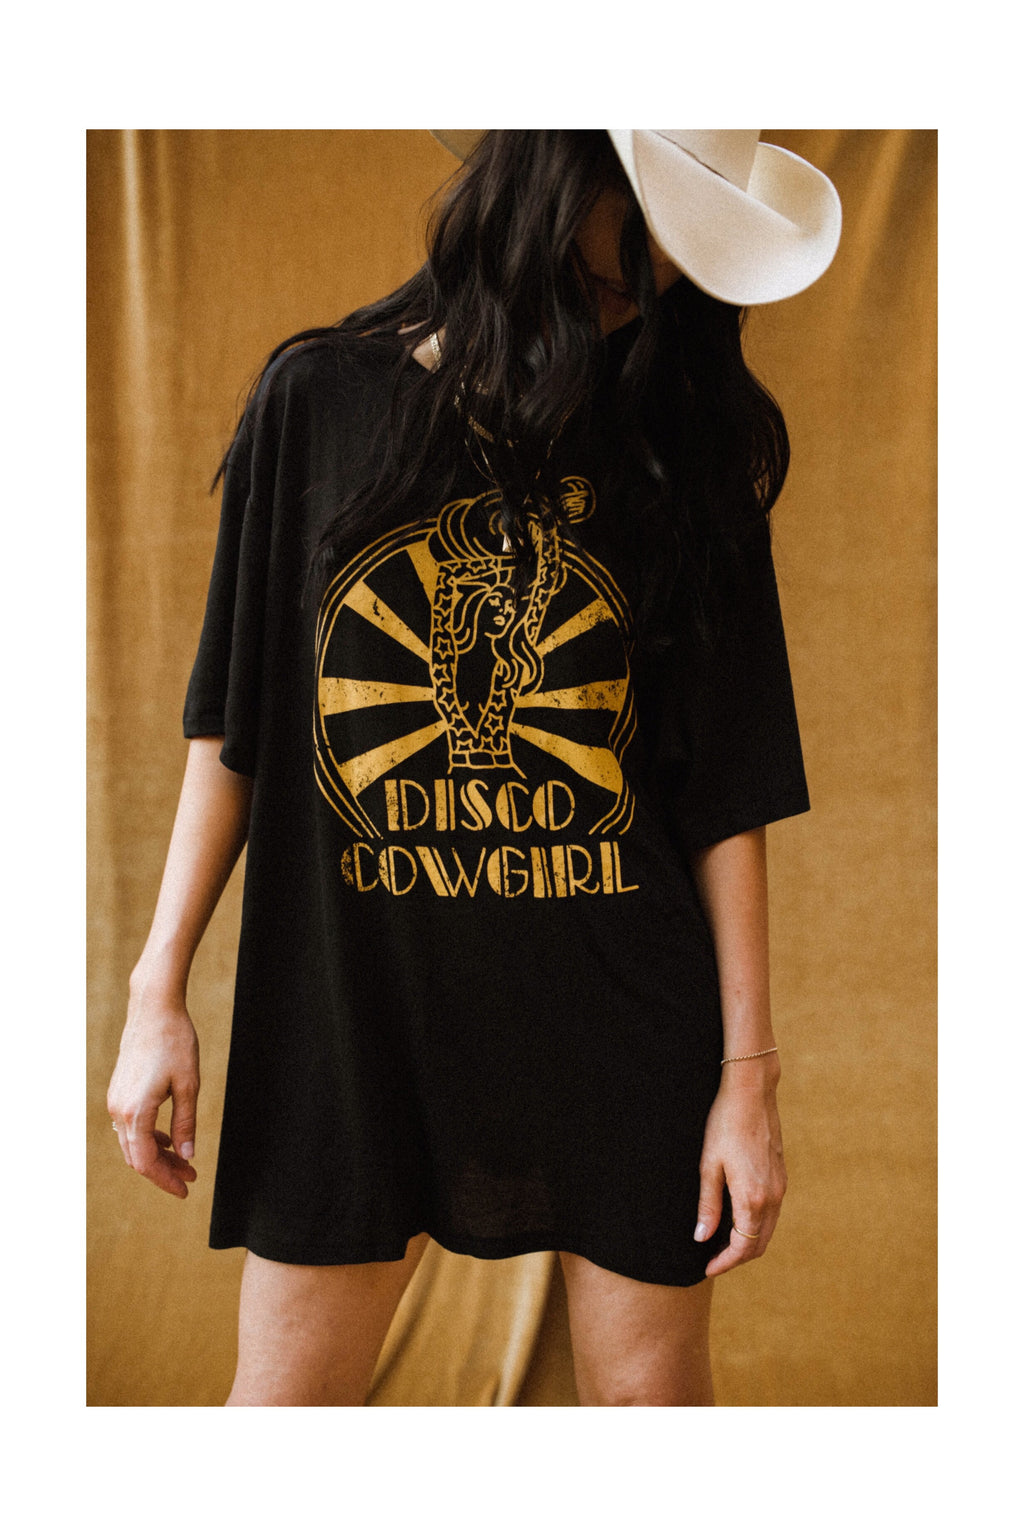 Disco Darlin' Tee- vintage gold on black